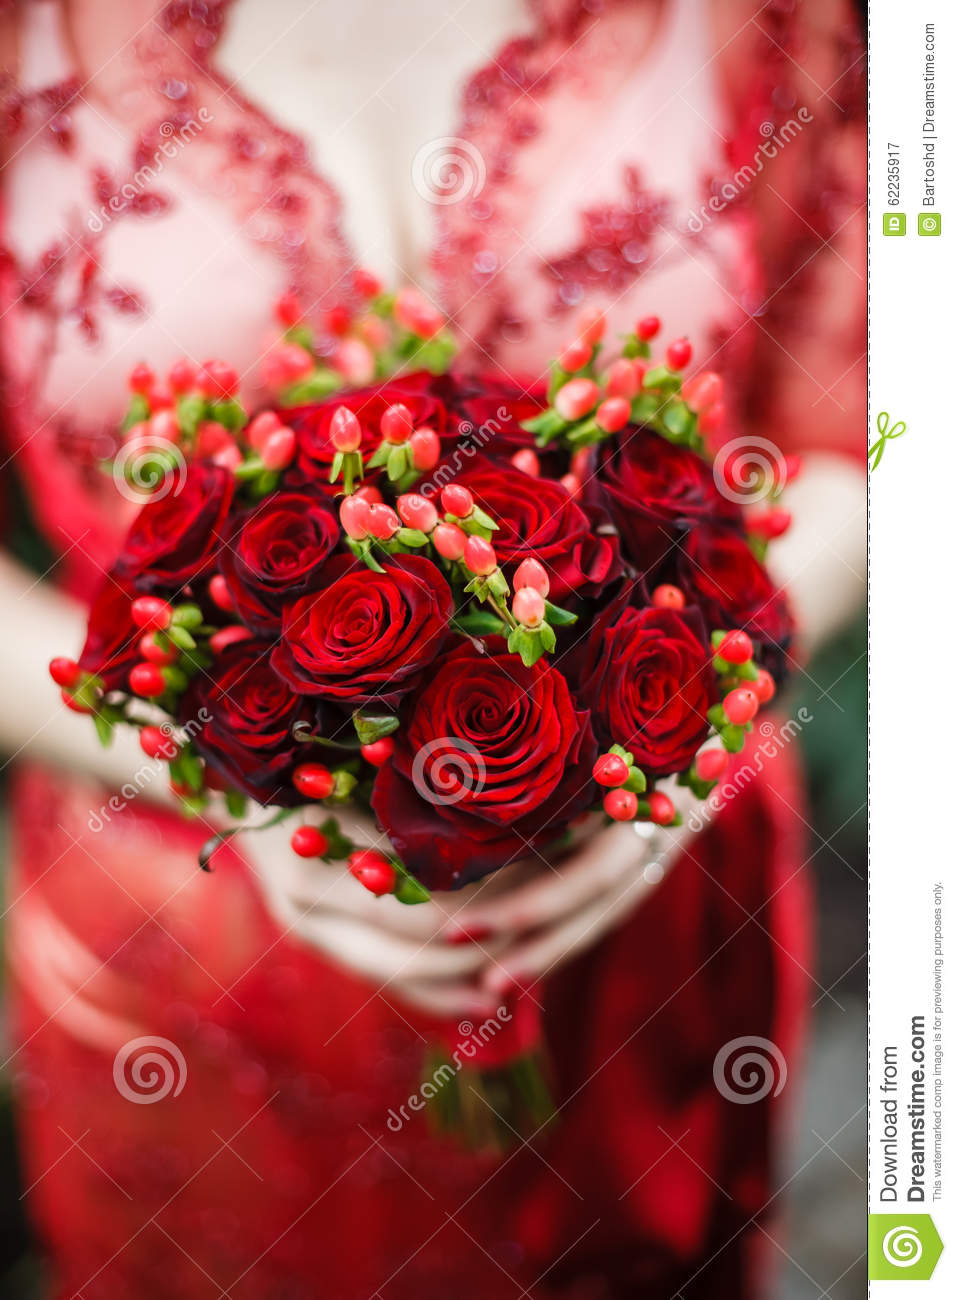 Bride holding her red wedding bouquet of flowers stock image image royalty free stock photo izmirmasajfo